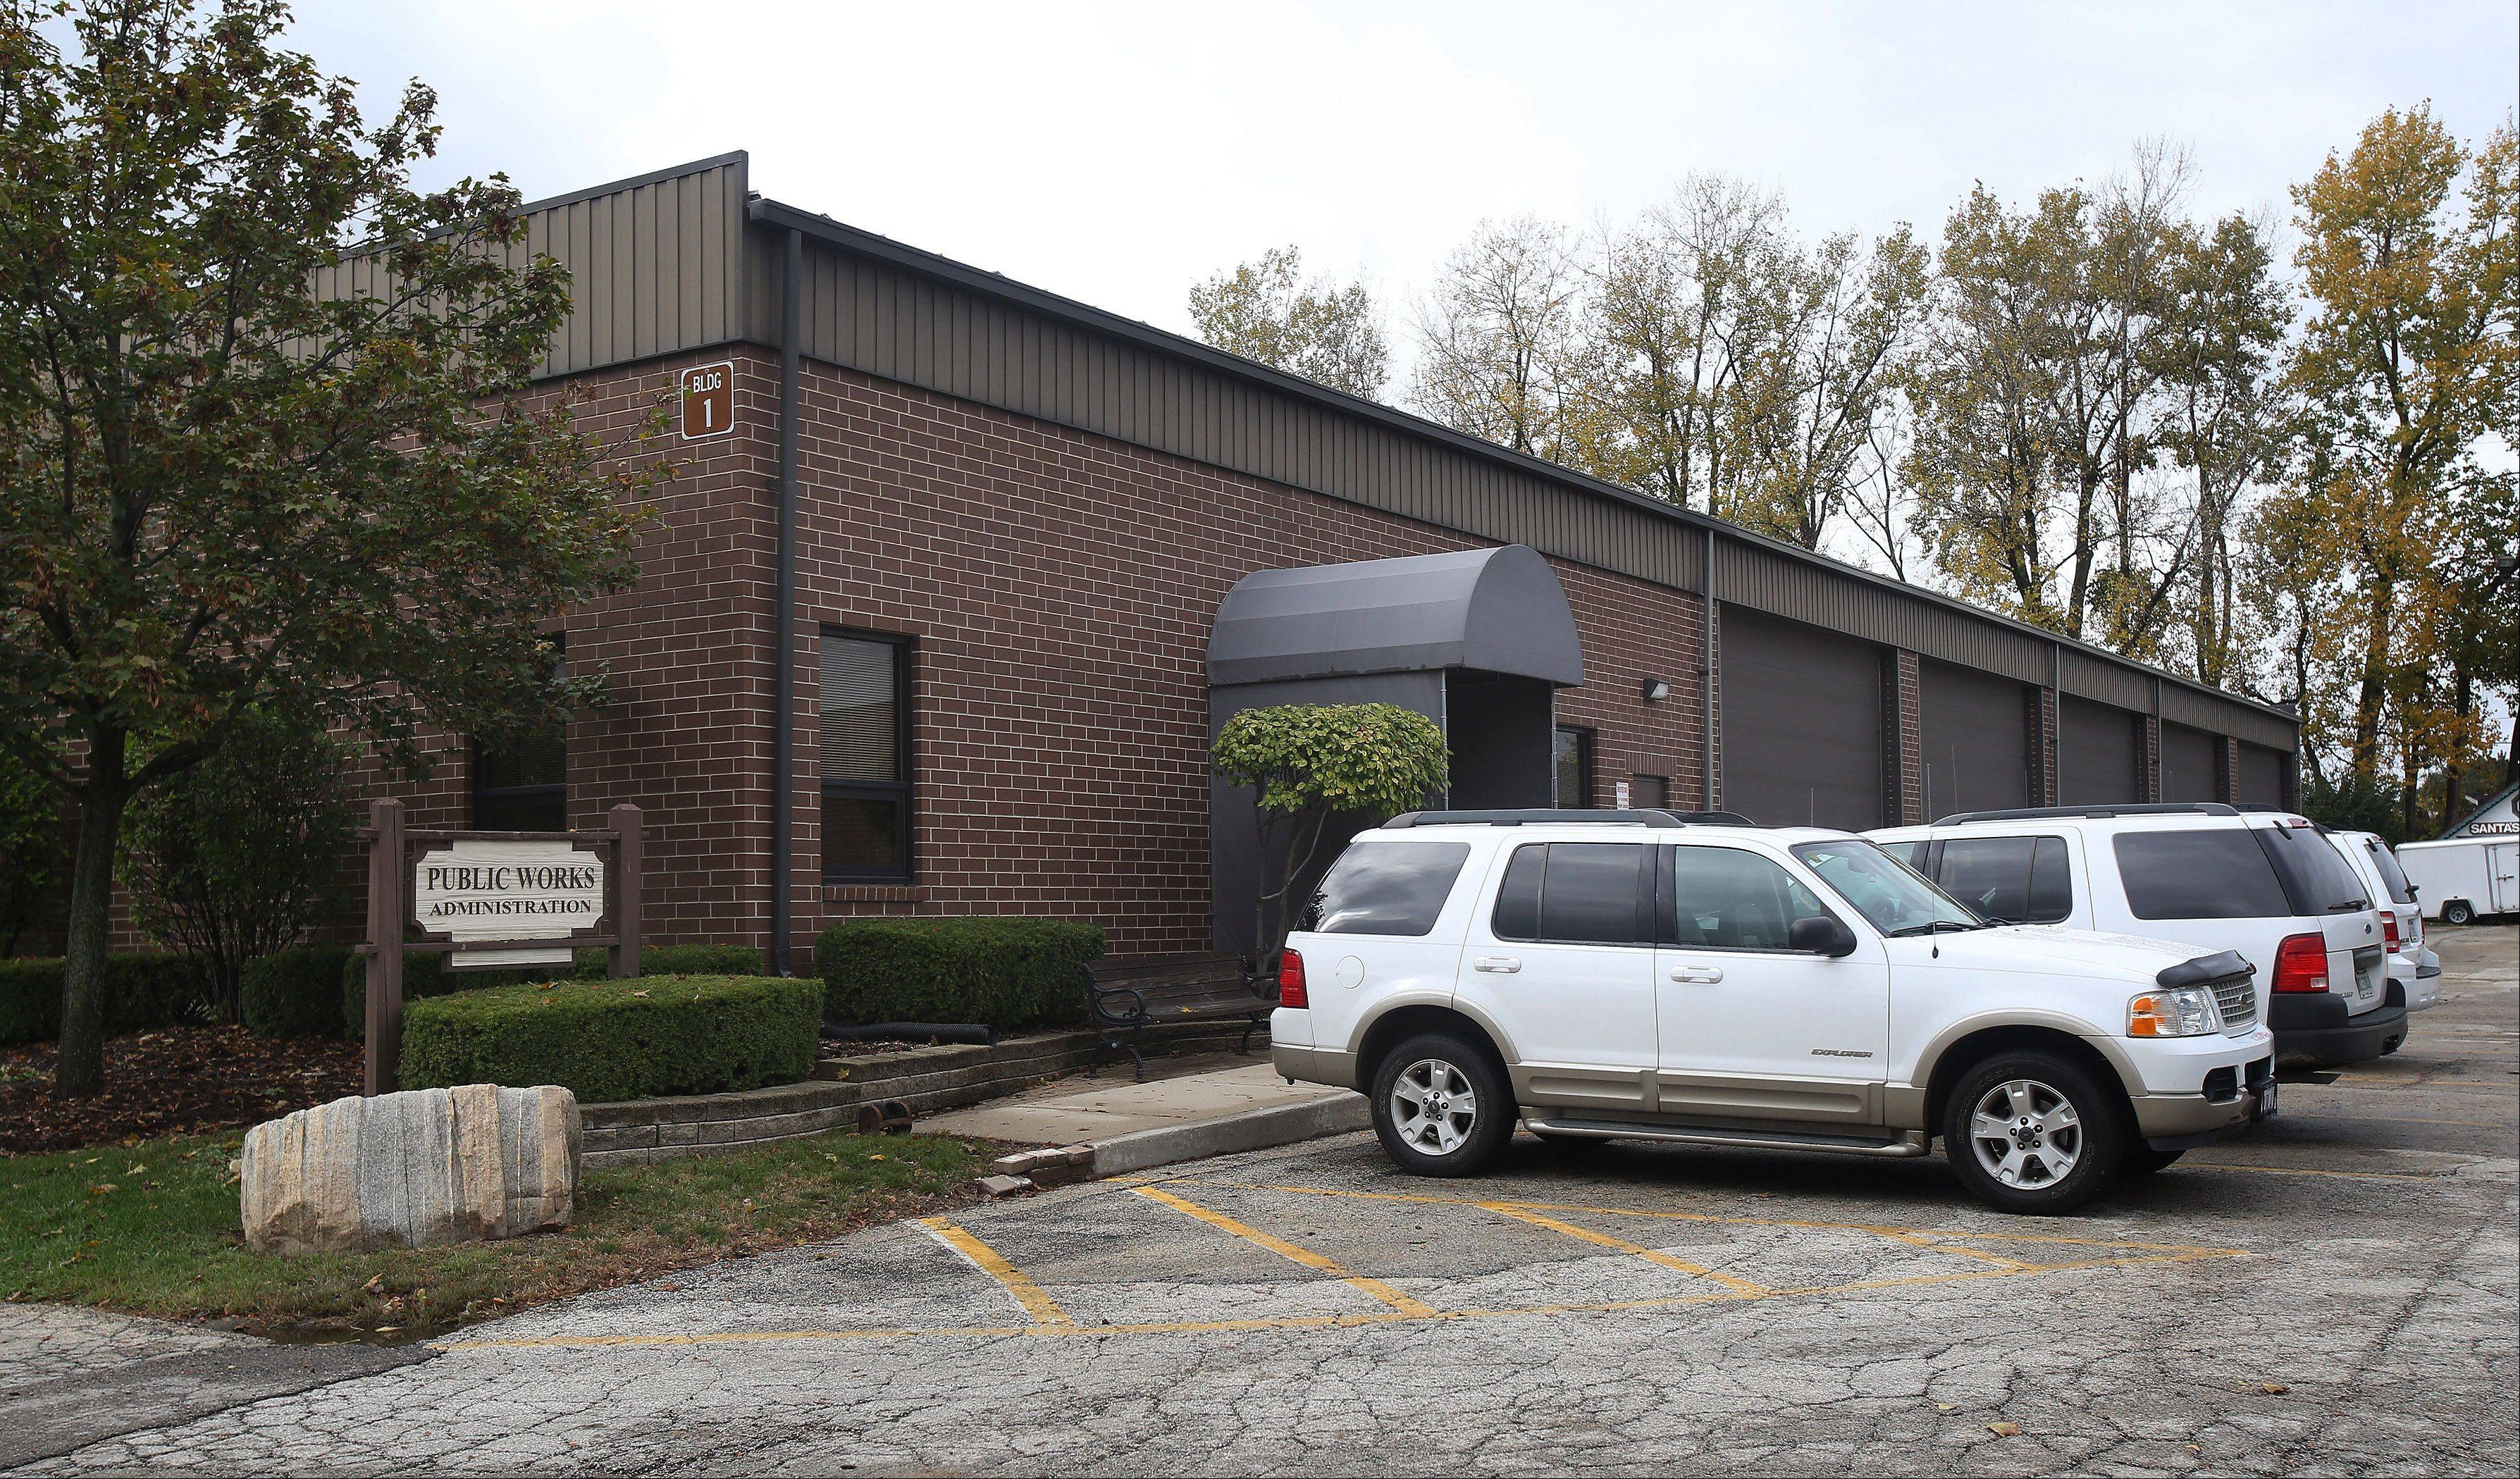 Mundelein's main public works office at 440 E. Crystal St. is one of three separate public works facilities the village plans to consolidate at a single site.